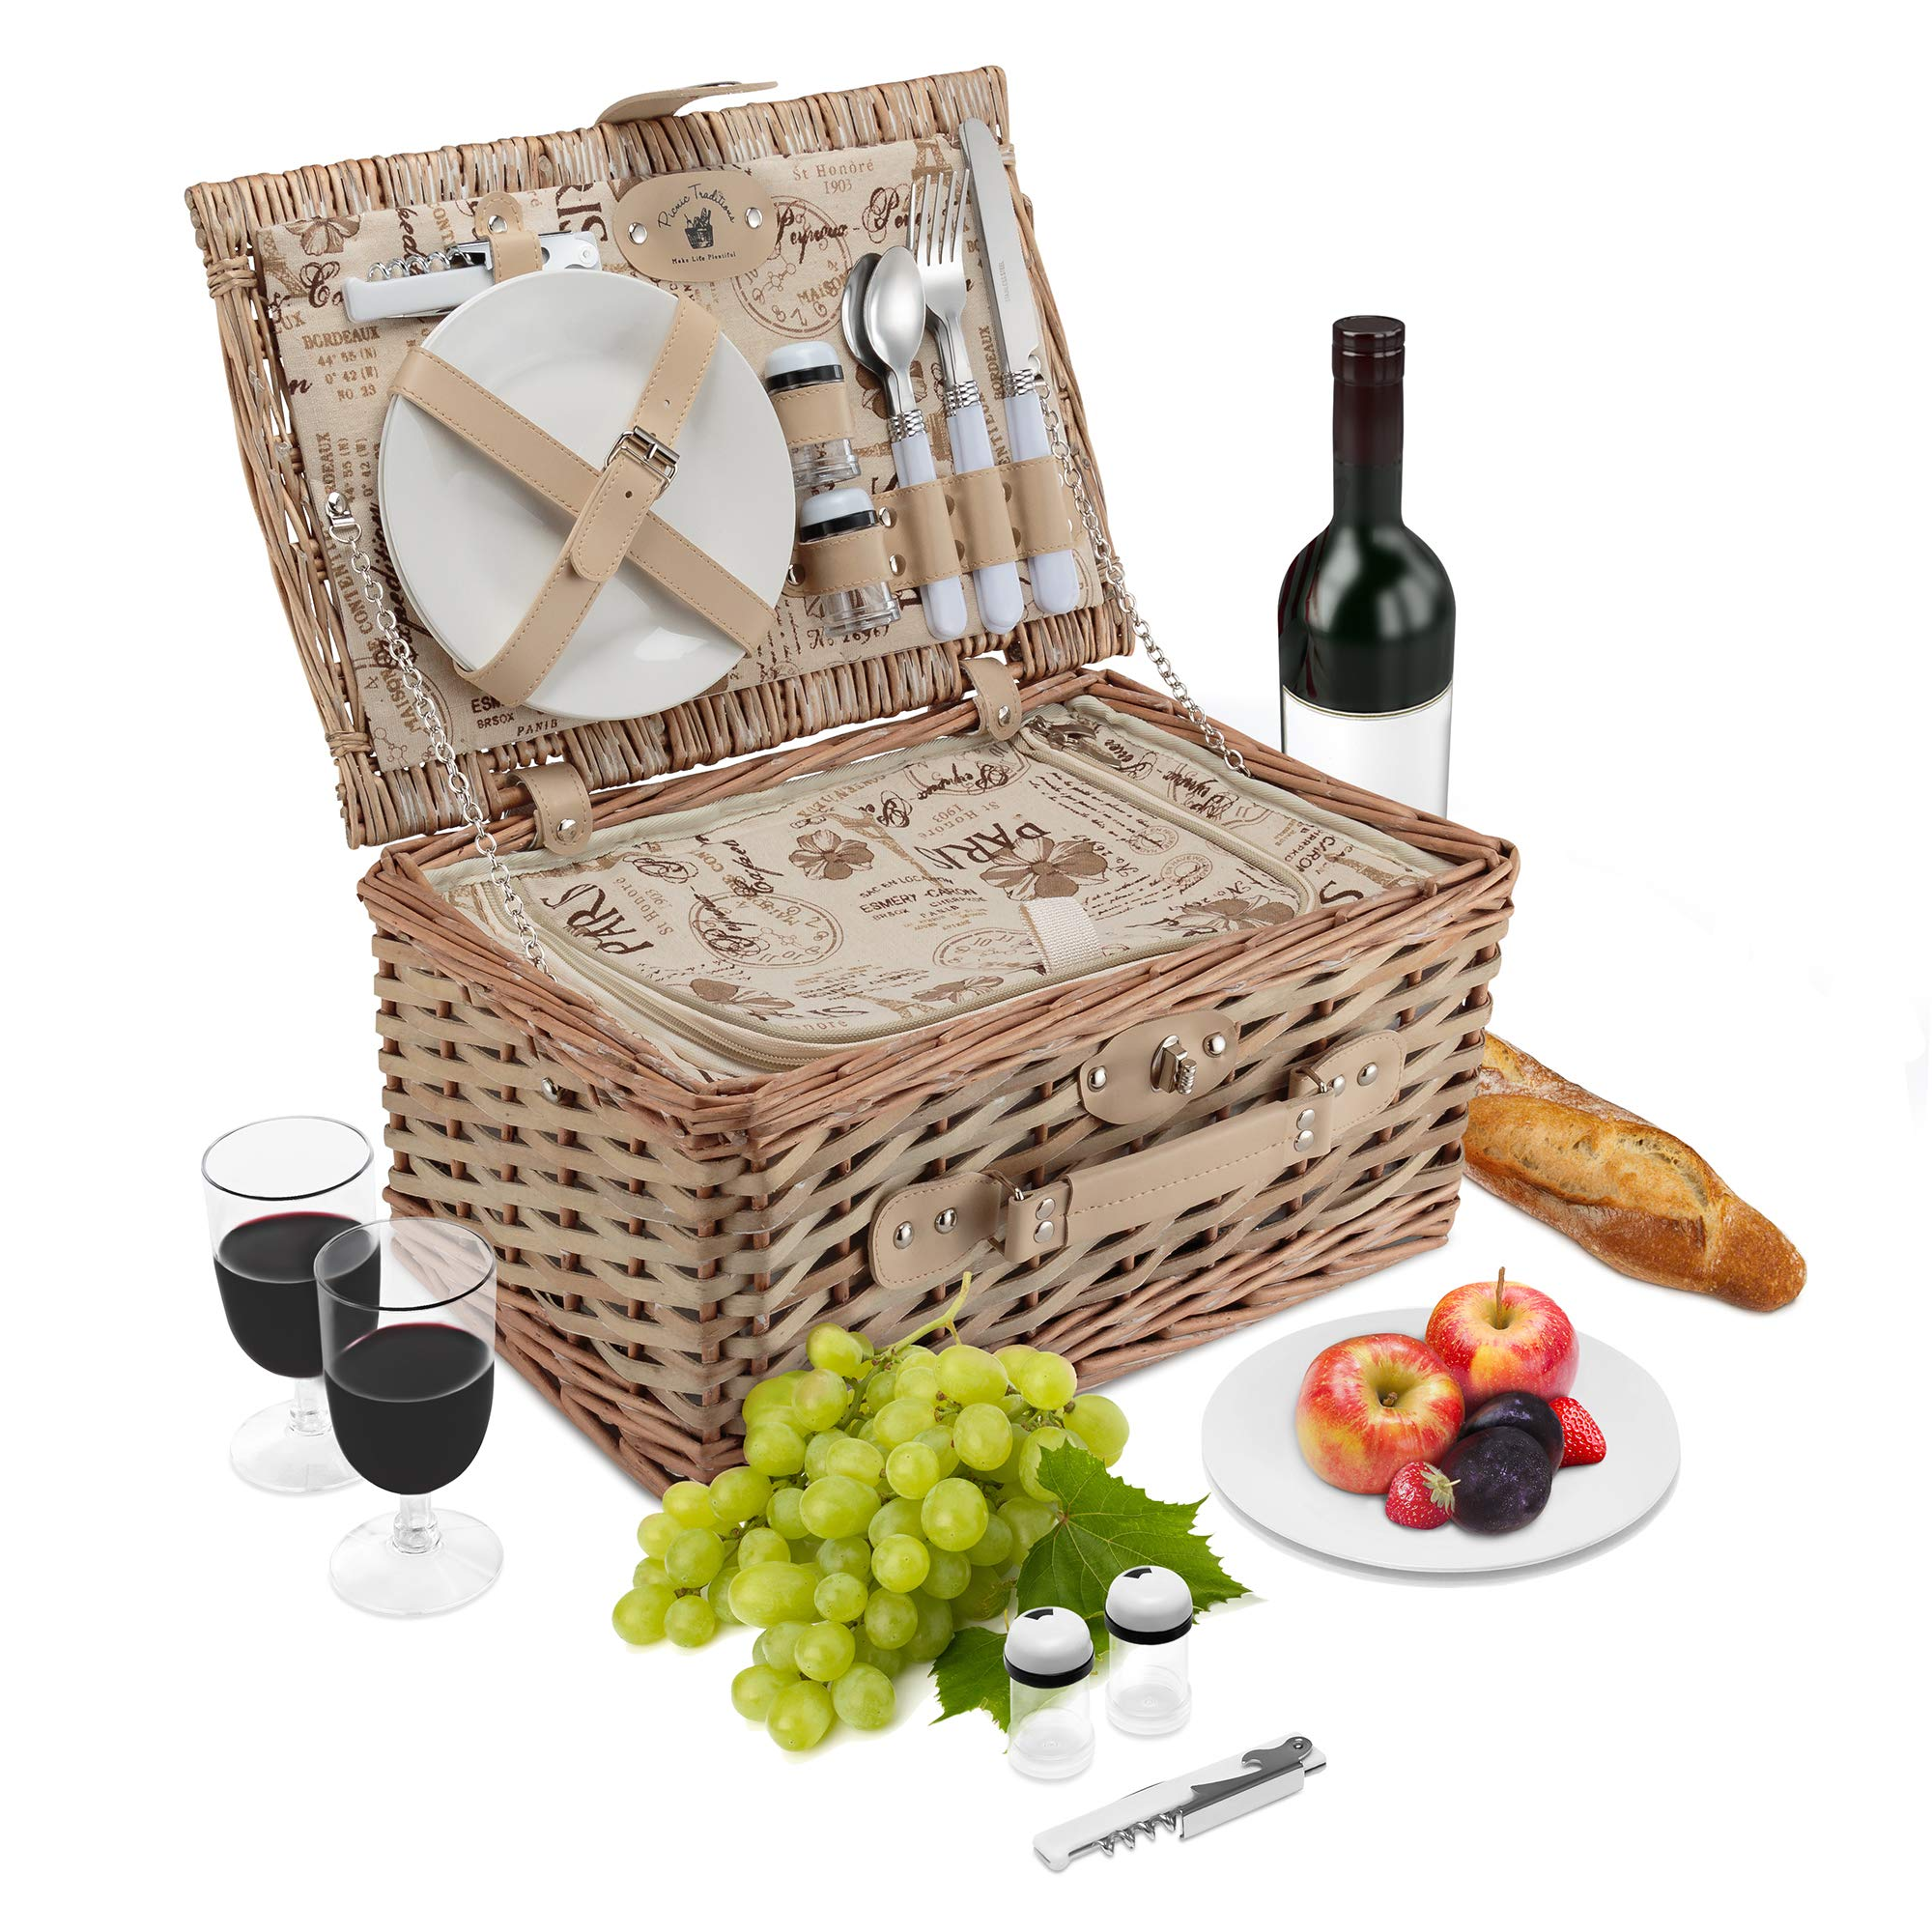 Wicker Picnic Basket Set   2 Person Deluxe Vintage Style Woven Willow Picnic Hamper   Built-in Cooler   Ceramic Plates, Stainless Steel Silverware, Wine Glasses, S/P Shakers, Bottle Opener (Natural) by Picnic Traditions